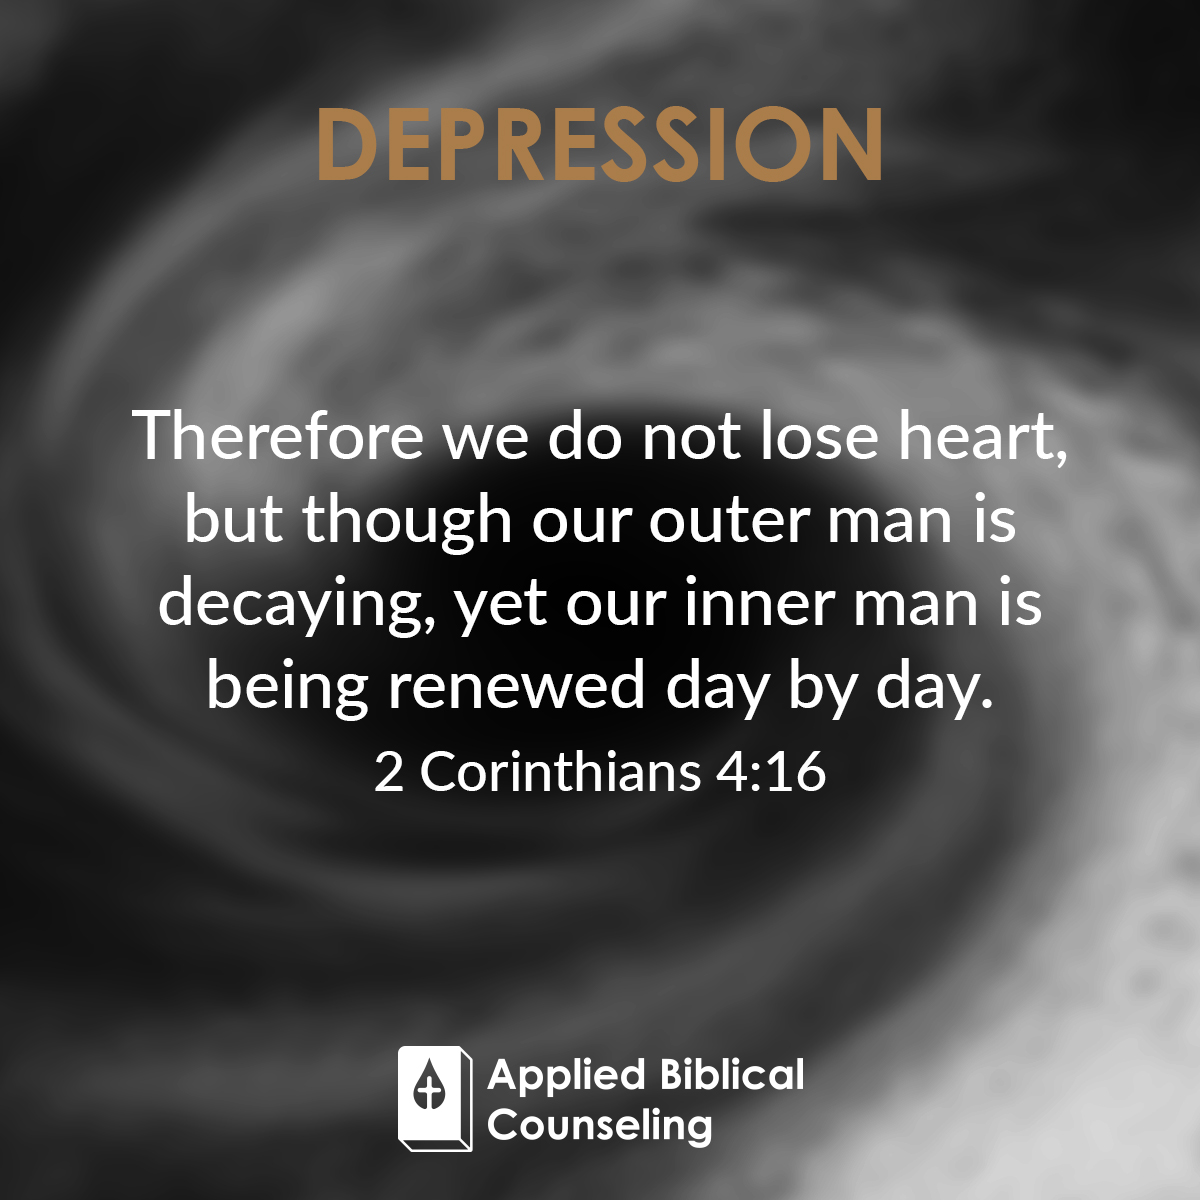 Applied Biblical Counseling Facebook w27 Depression 3